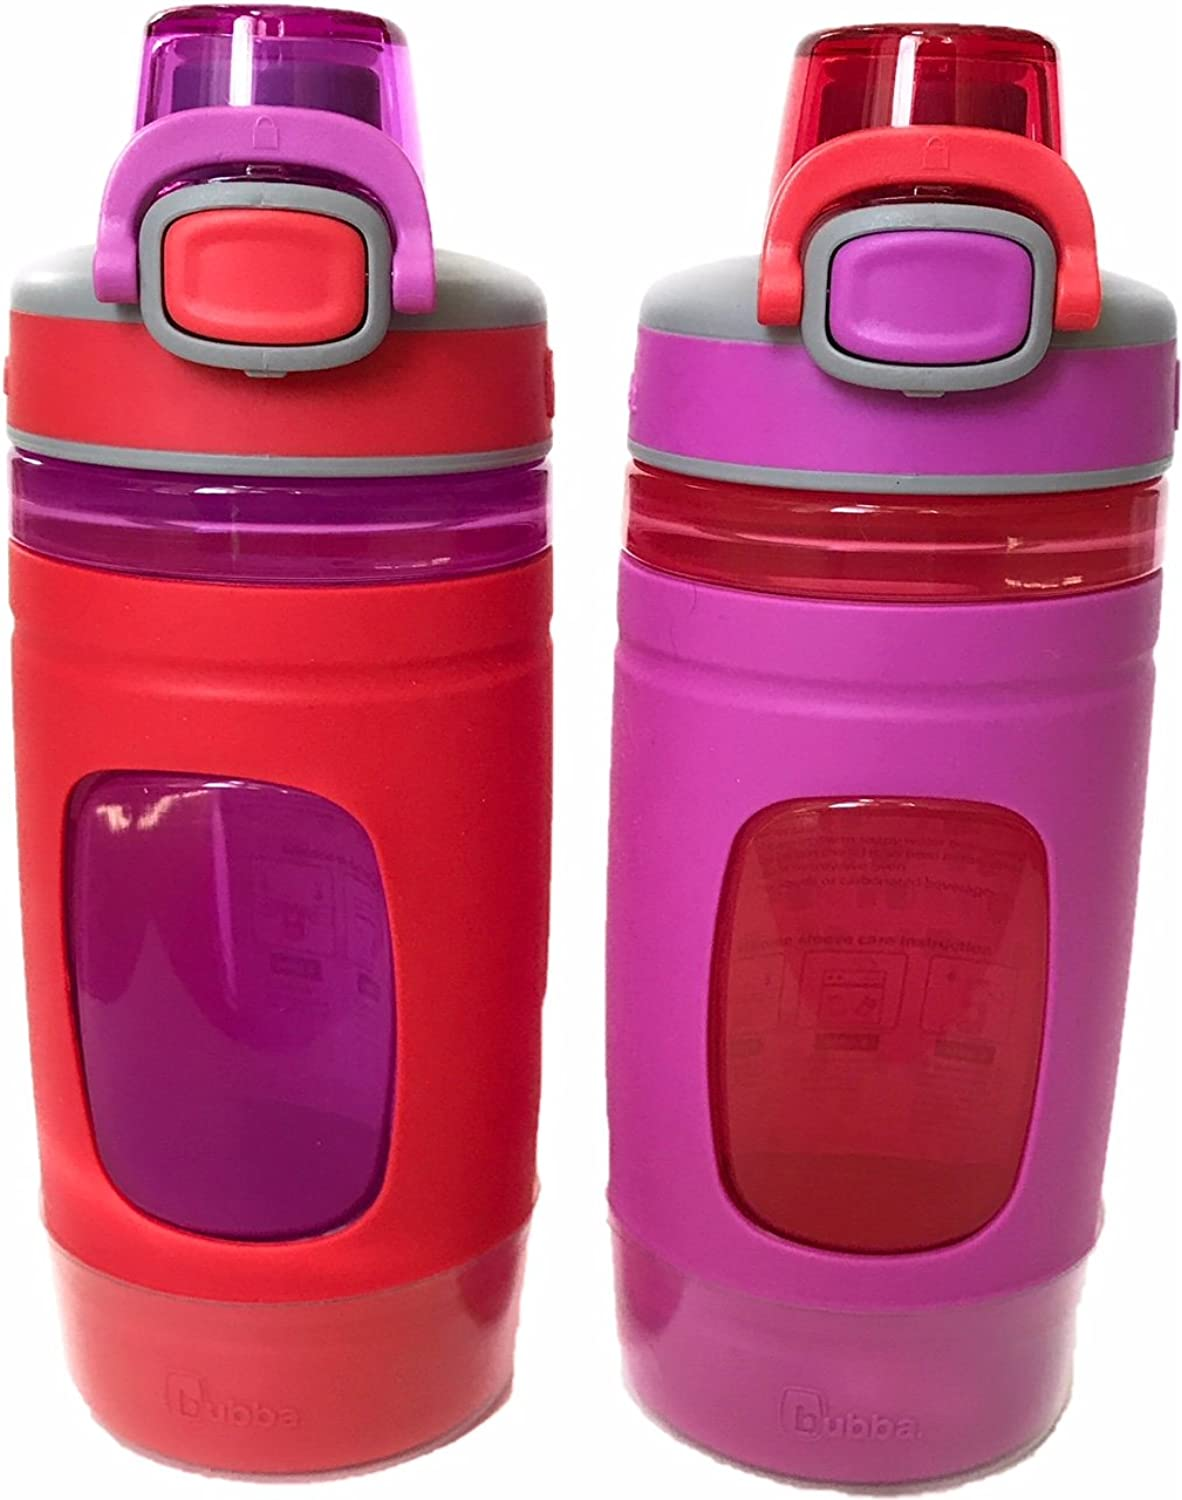 Bubba Flo Kids Water Bottle with Silicone Sleeve, 16 oz. (Pack of 2)